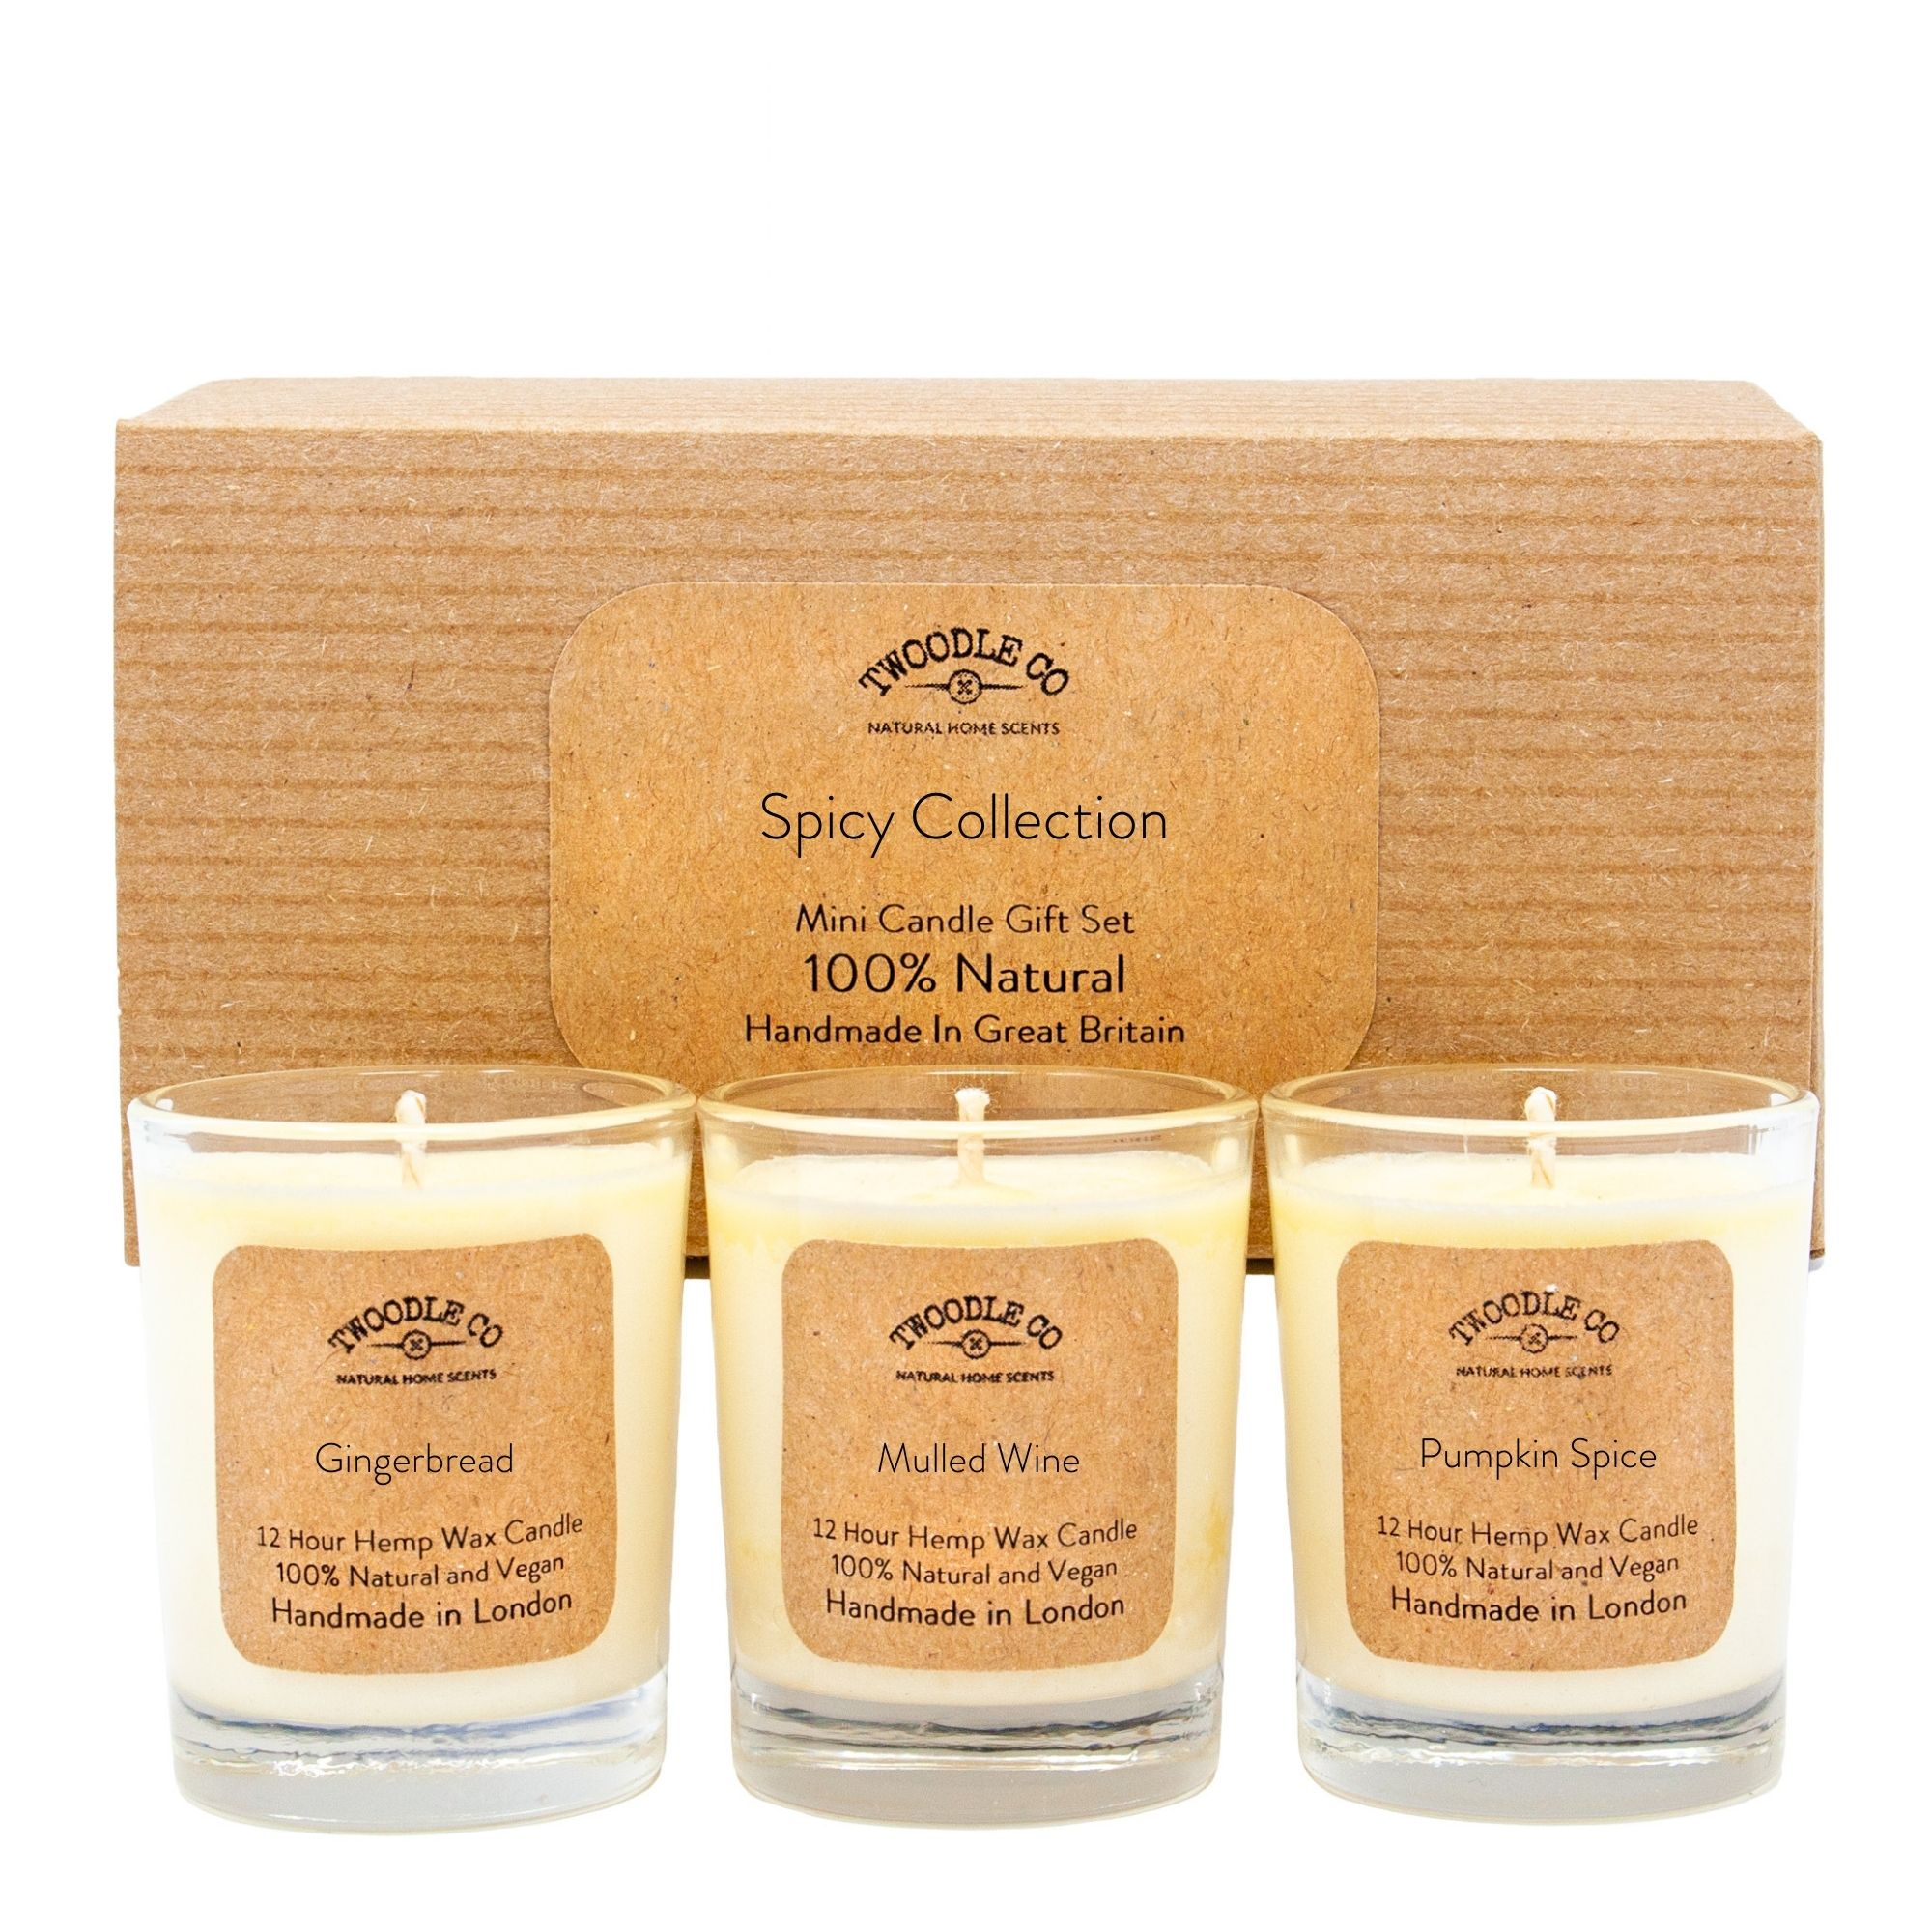 Spicy Collection Mini triple candle Gift Set by twoodle co natural home scents